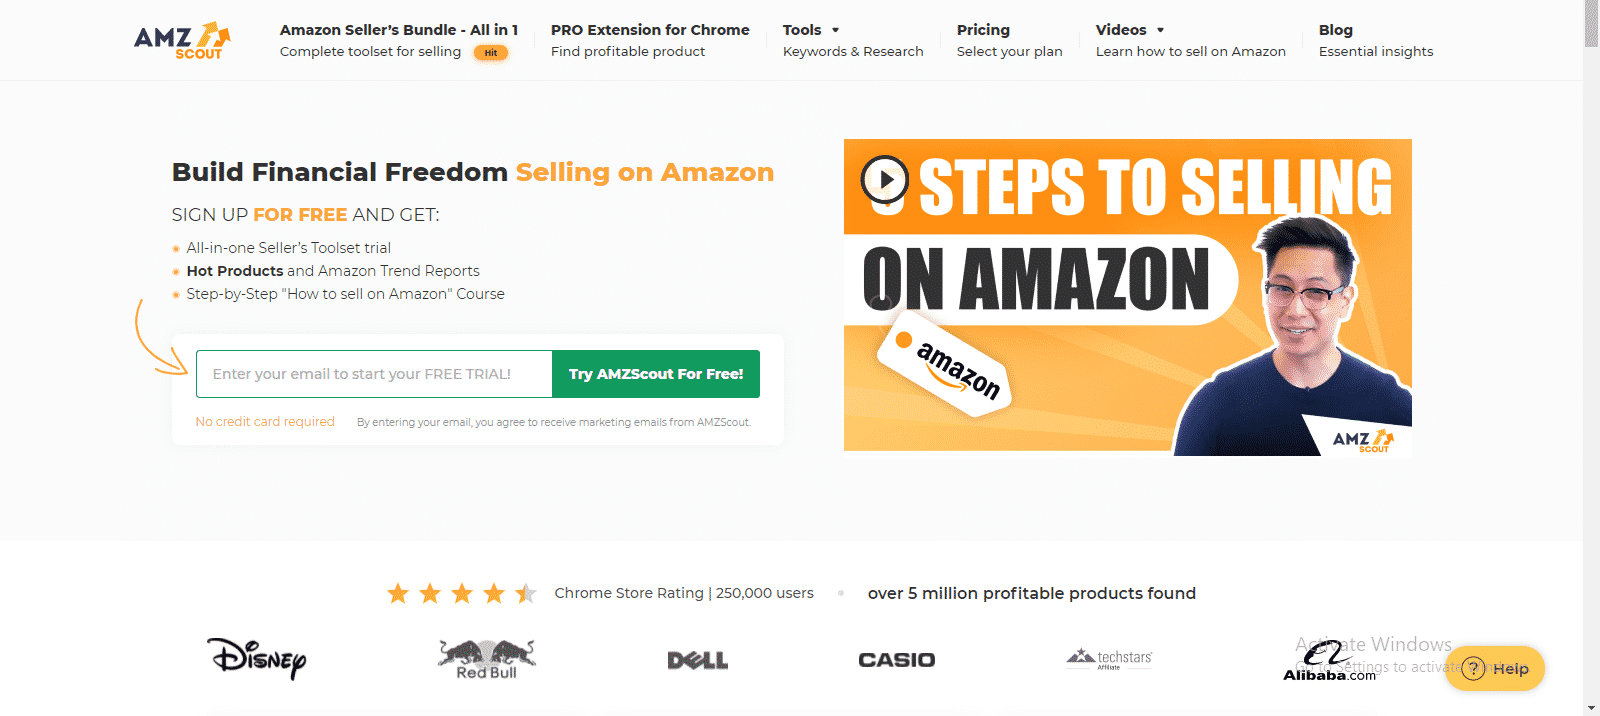 Amazon Software Review: Top 25 Best Amazon software for 2021 11